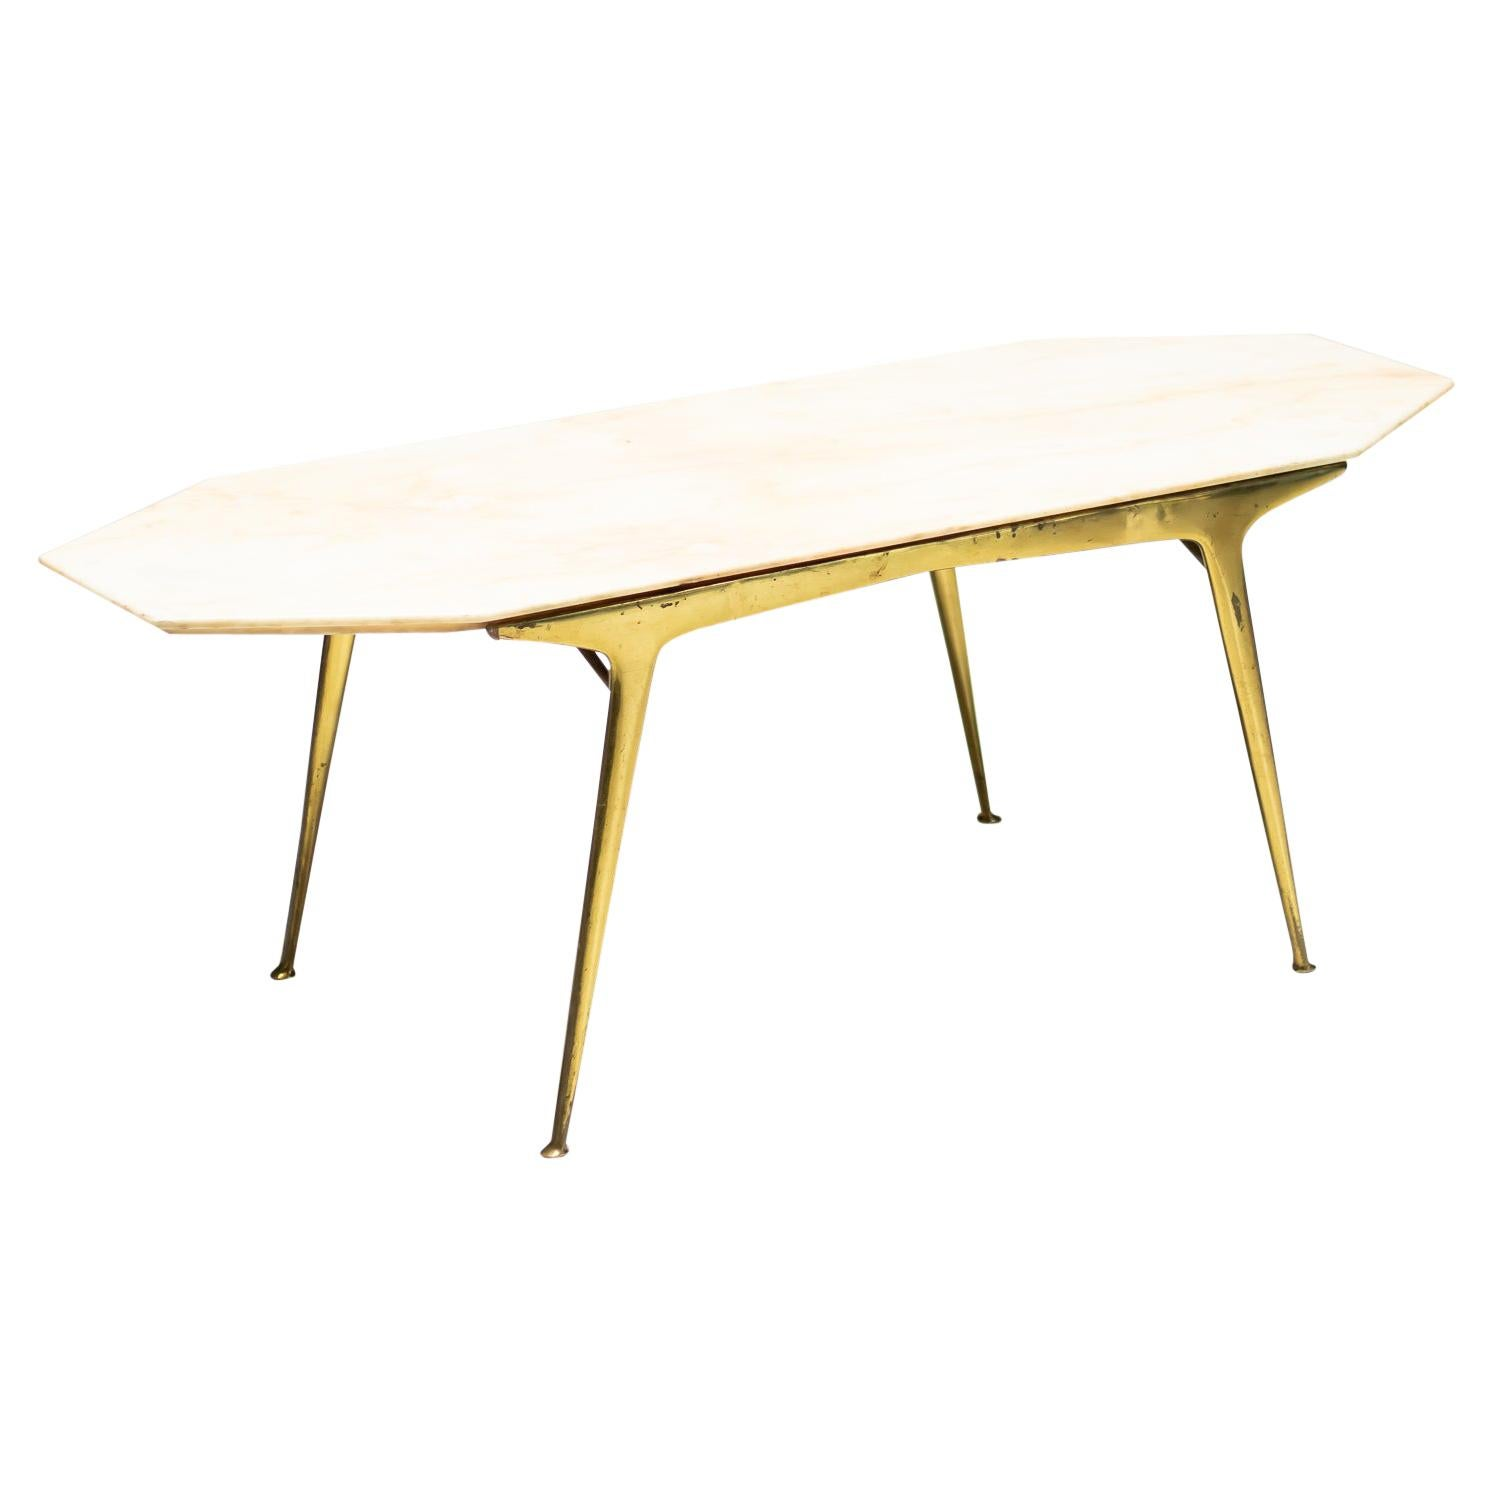 Italian Brass and Marble Coffee Table